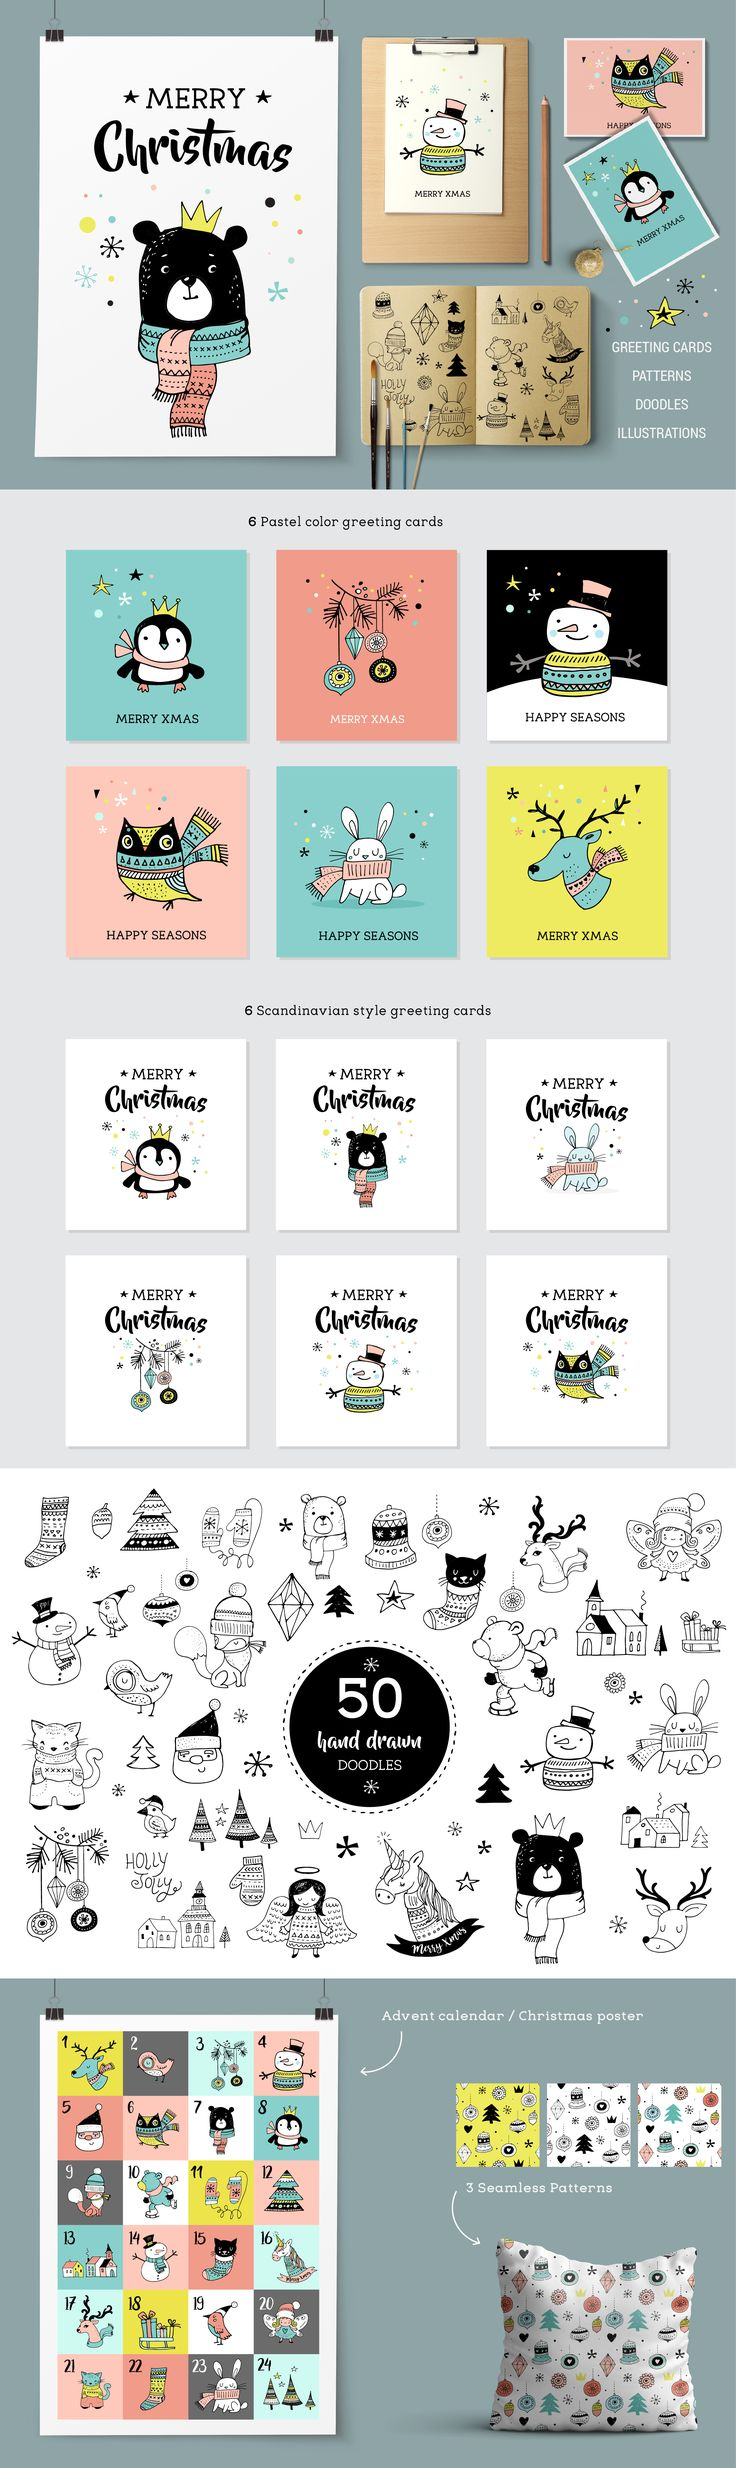 Merry Christmas greetings & doodles  by Marish on @creativemarket